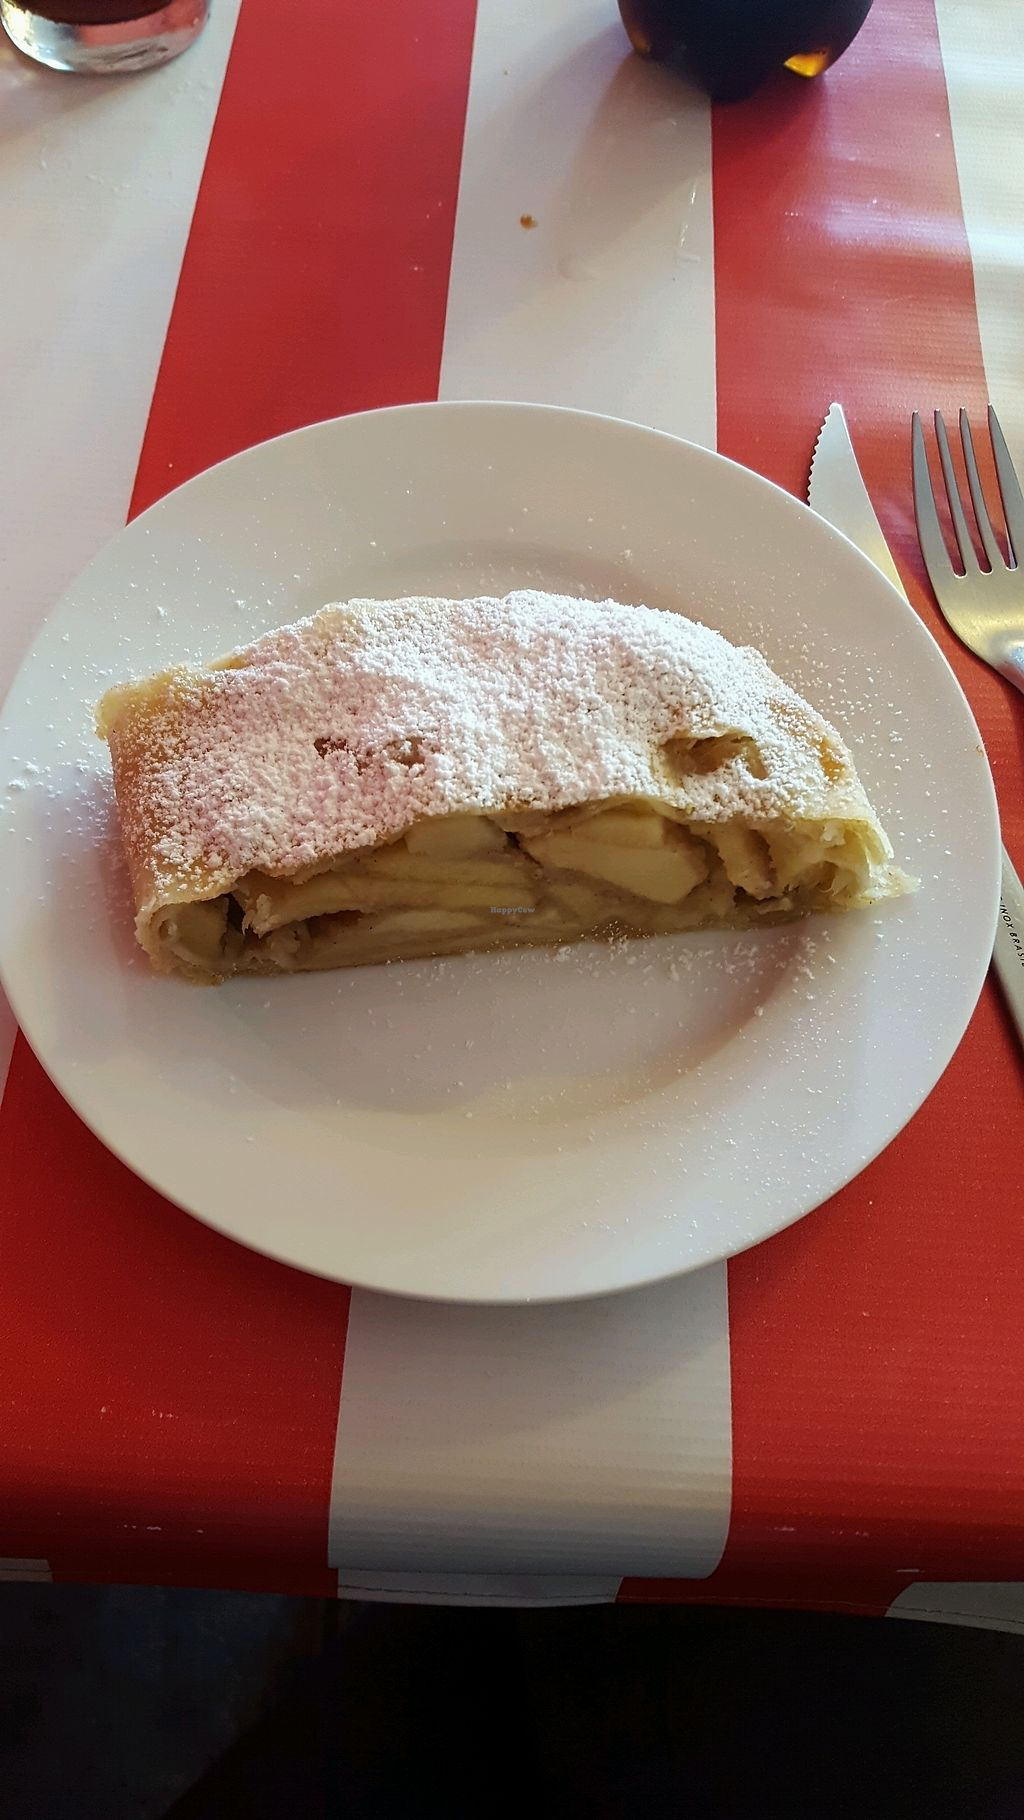 "Photo of Comida Naturista Irene's  by <a href=""/members/profile/VegRaluca"">VegRaluca</a> <br/>Strudel <br/> October 1, 2017  - <a href='/contact/abuse/image/37618/310568'>Report</a>"